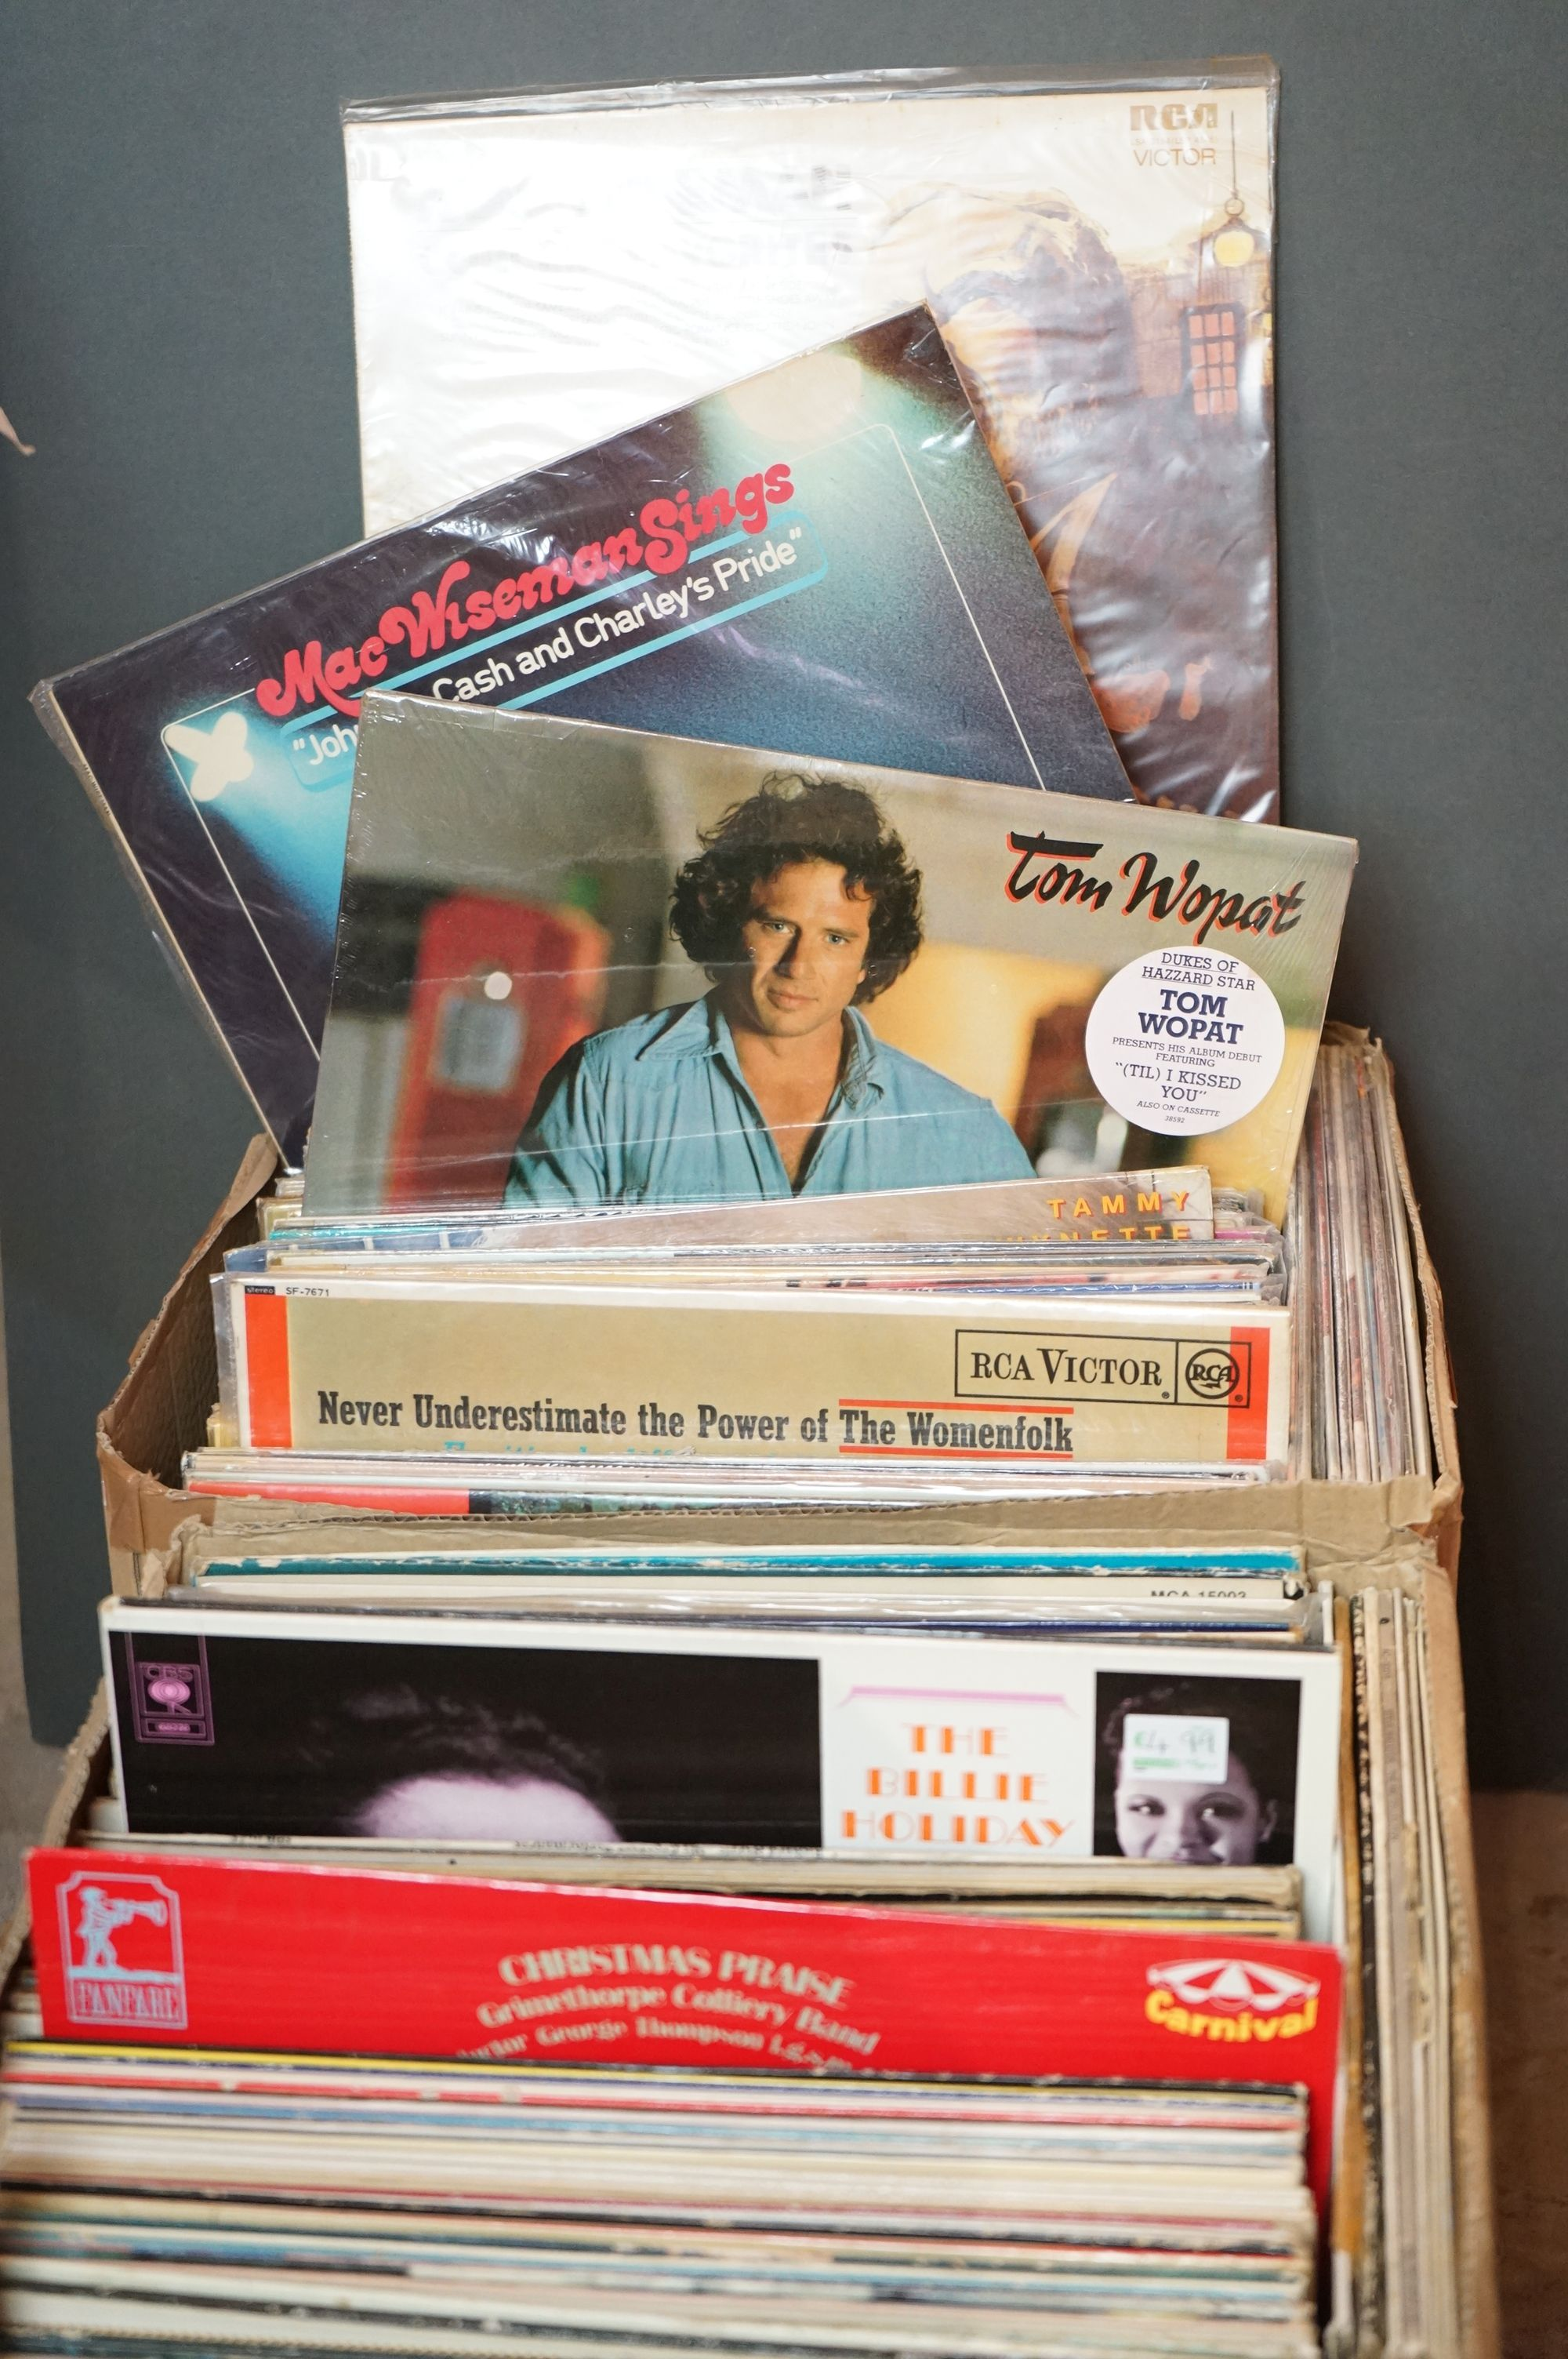 Vinyl - Over 200 LPs to include various genres featuring Link Wray, Tammy Wynette, Decca Digital,